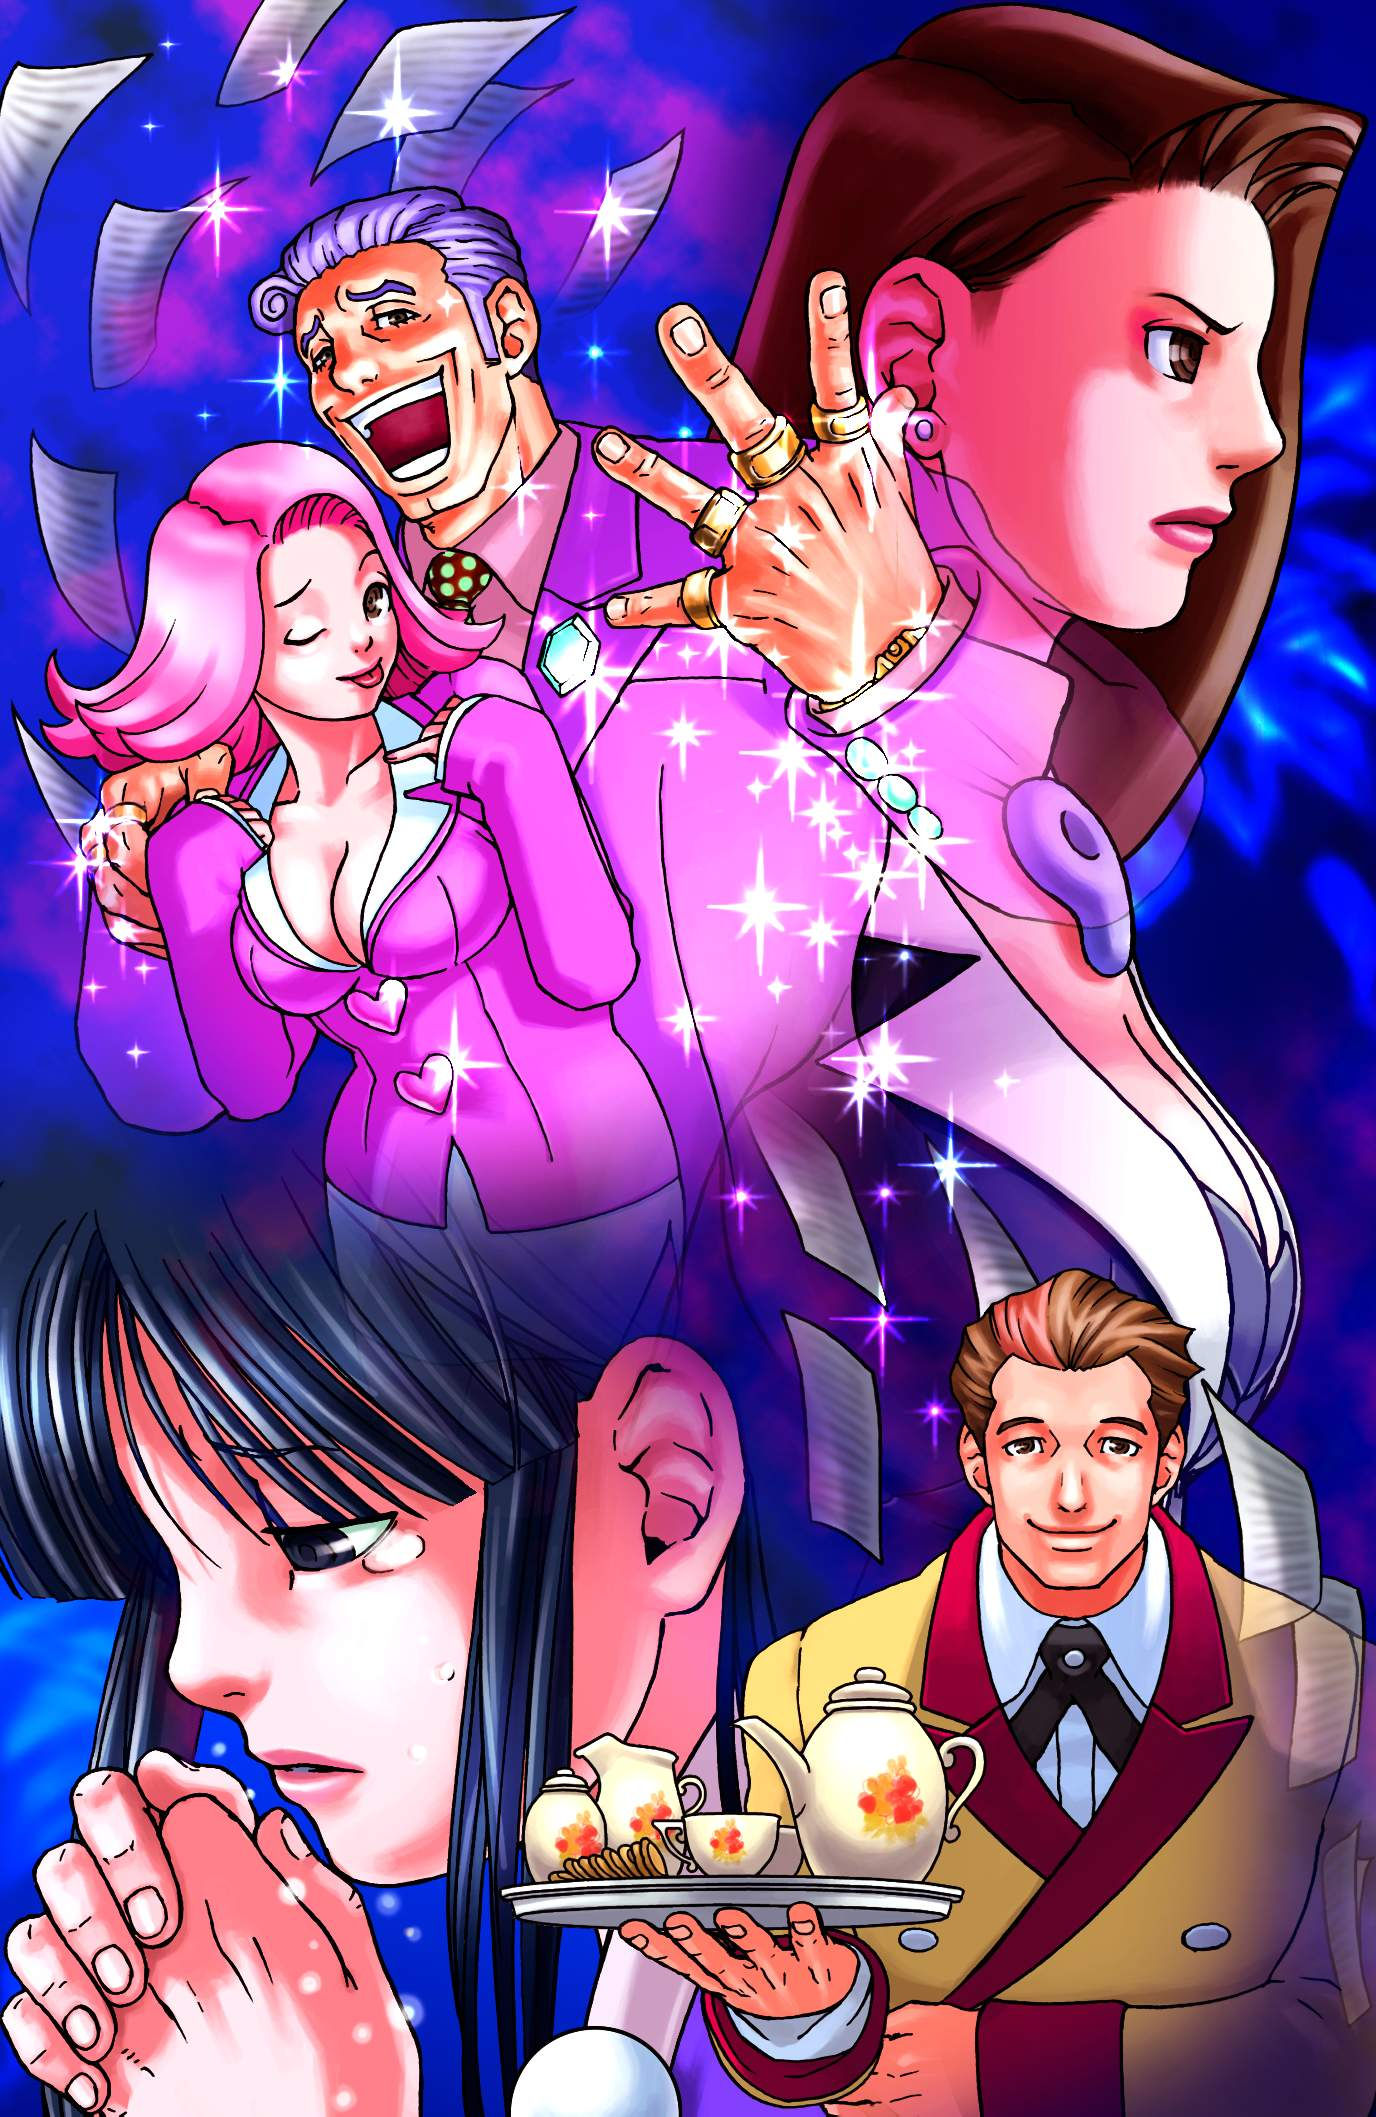 Phoenix Wright Ace Attorney 2010 Promotional Art Mobygames